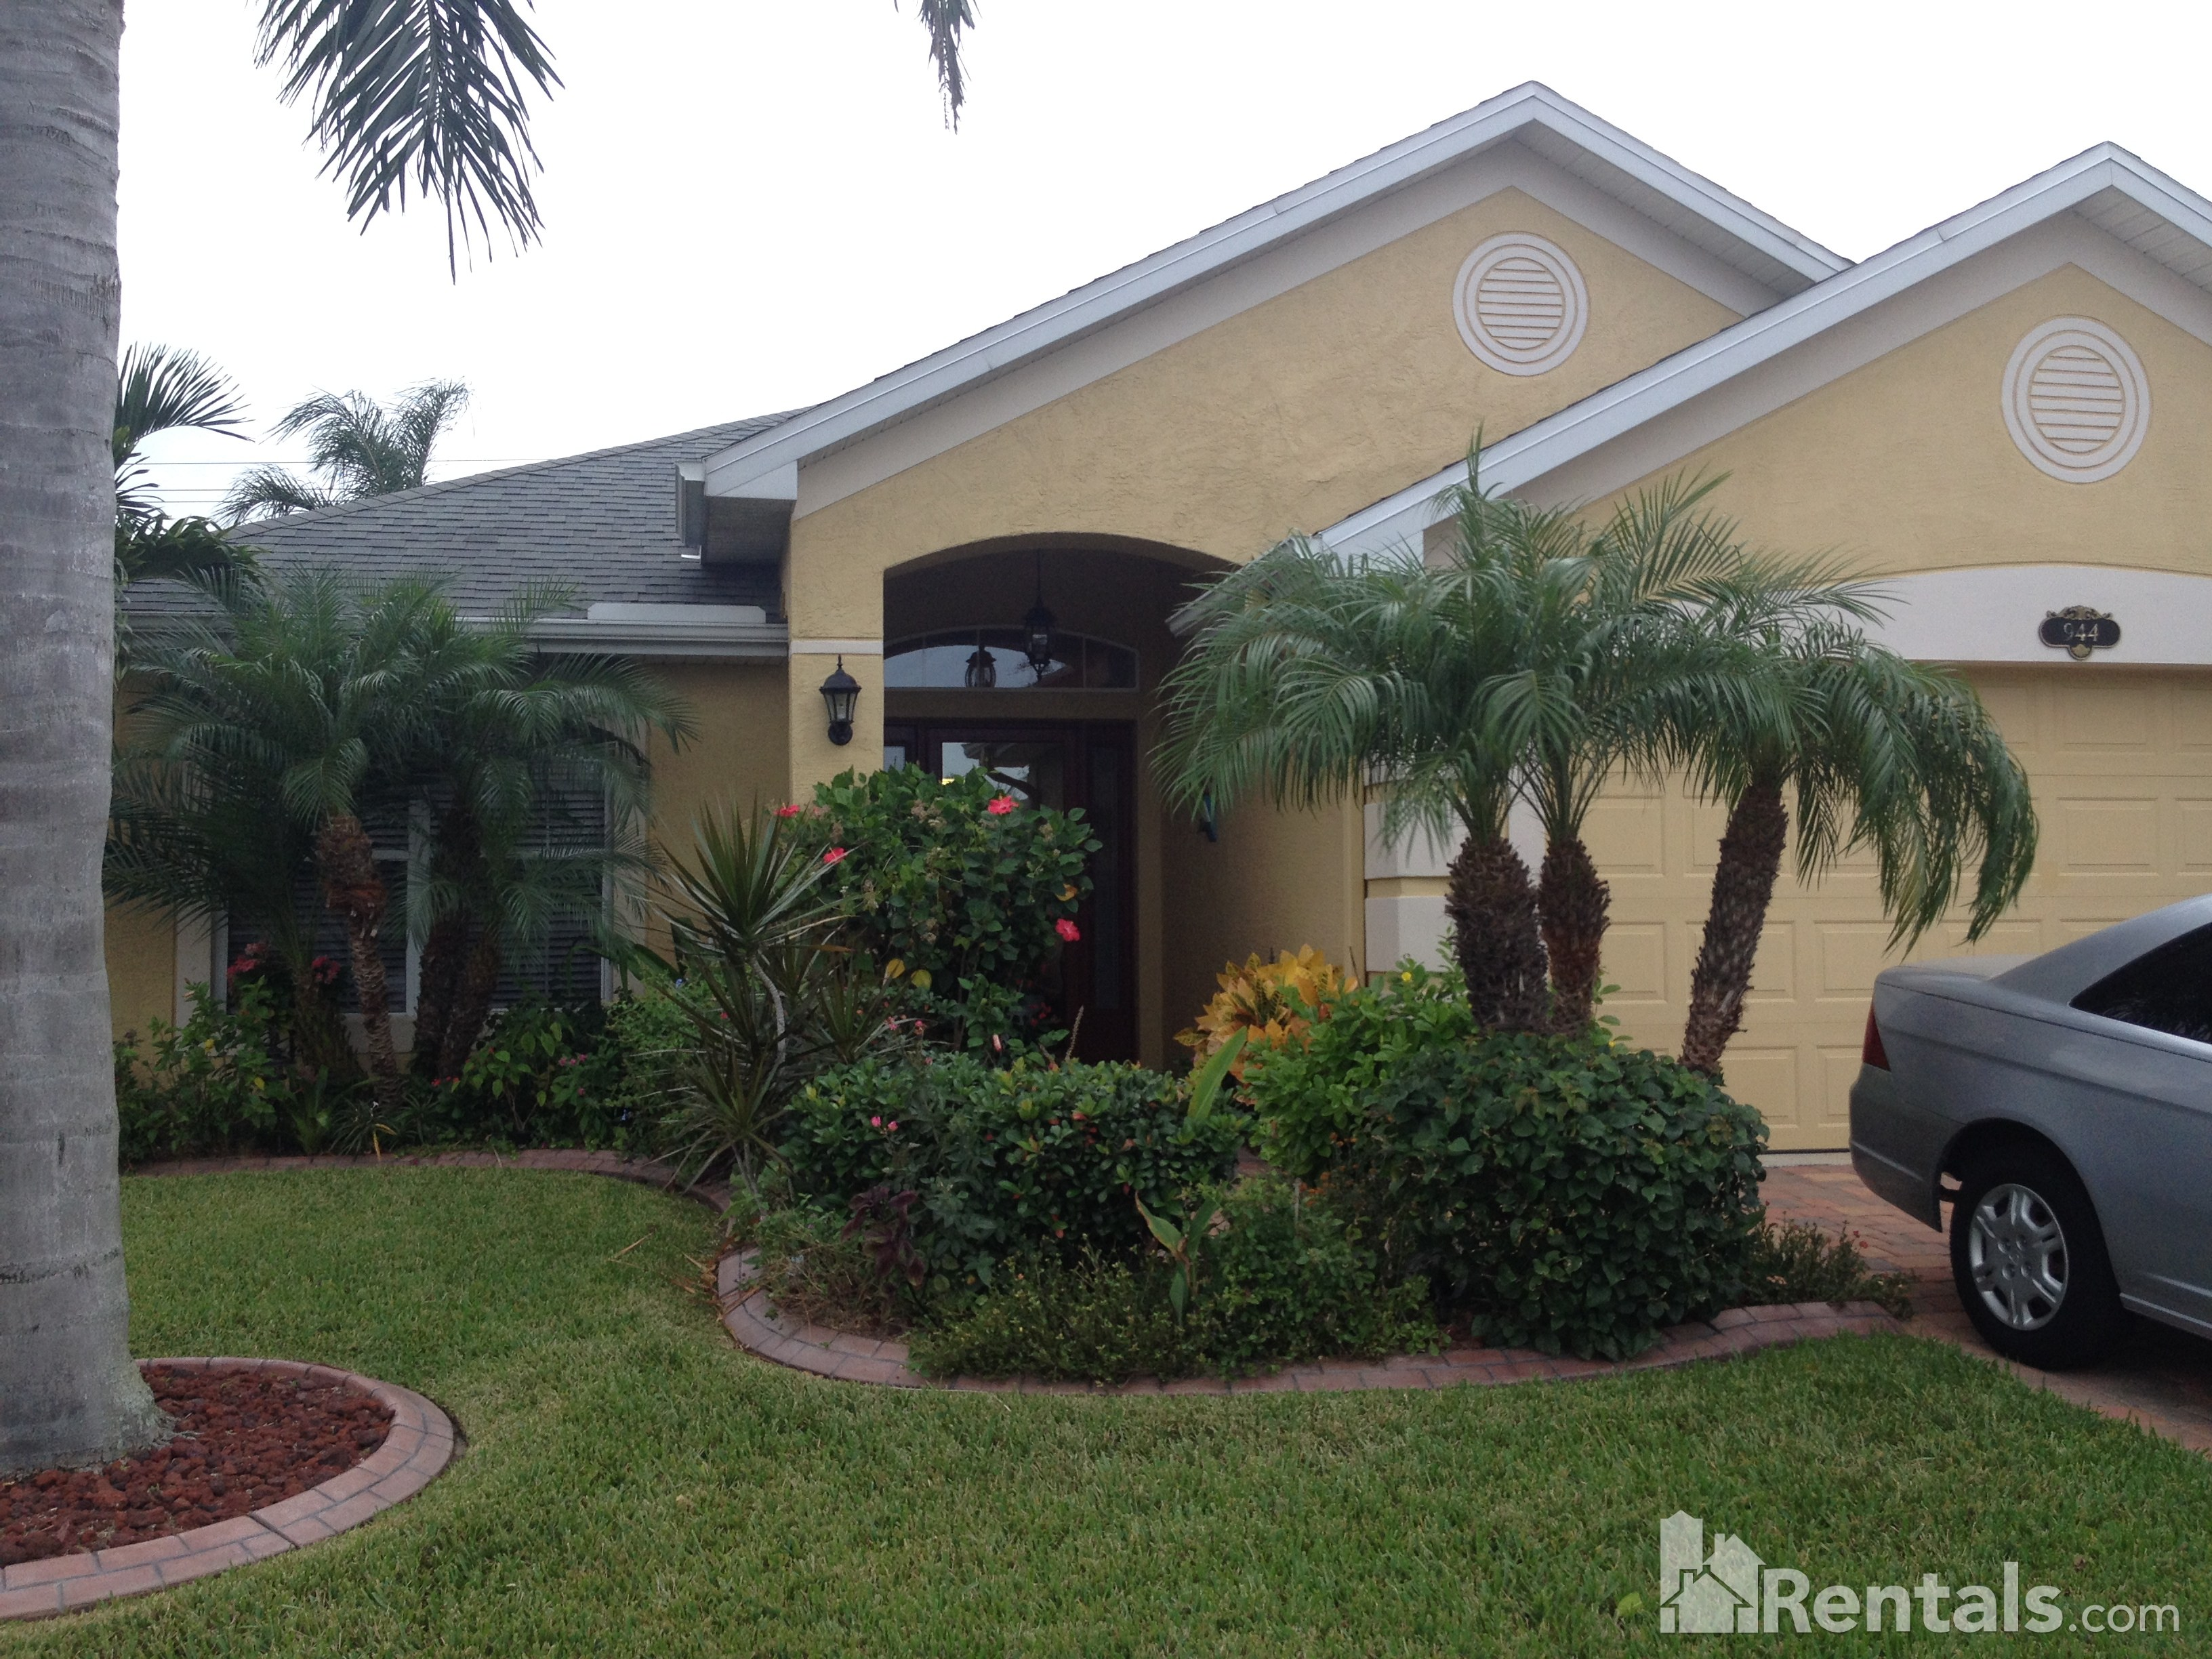 Melbourne houses for rent apartments in melbourne florida rental properties homes Rent 2 bedroom apartment melbourne